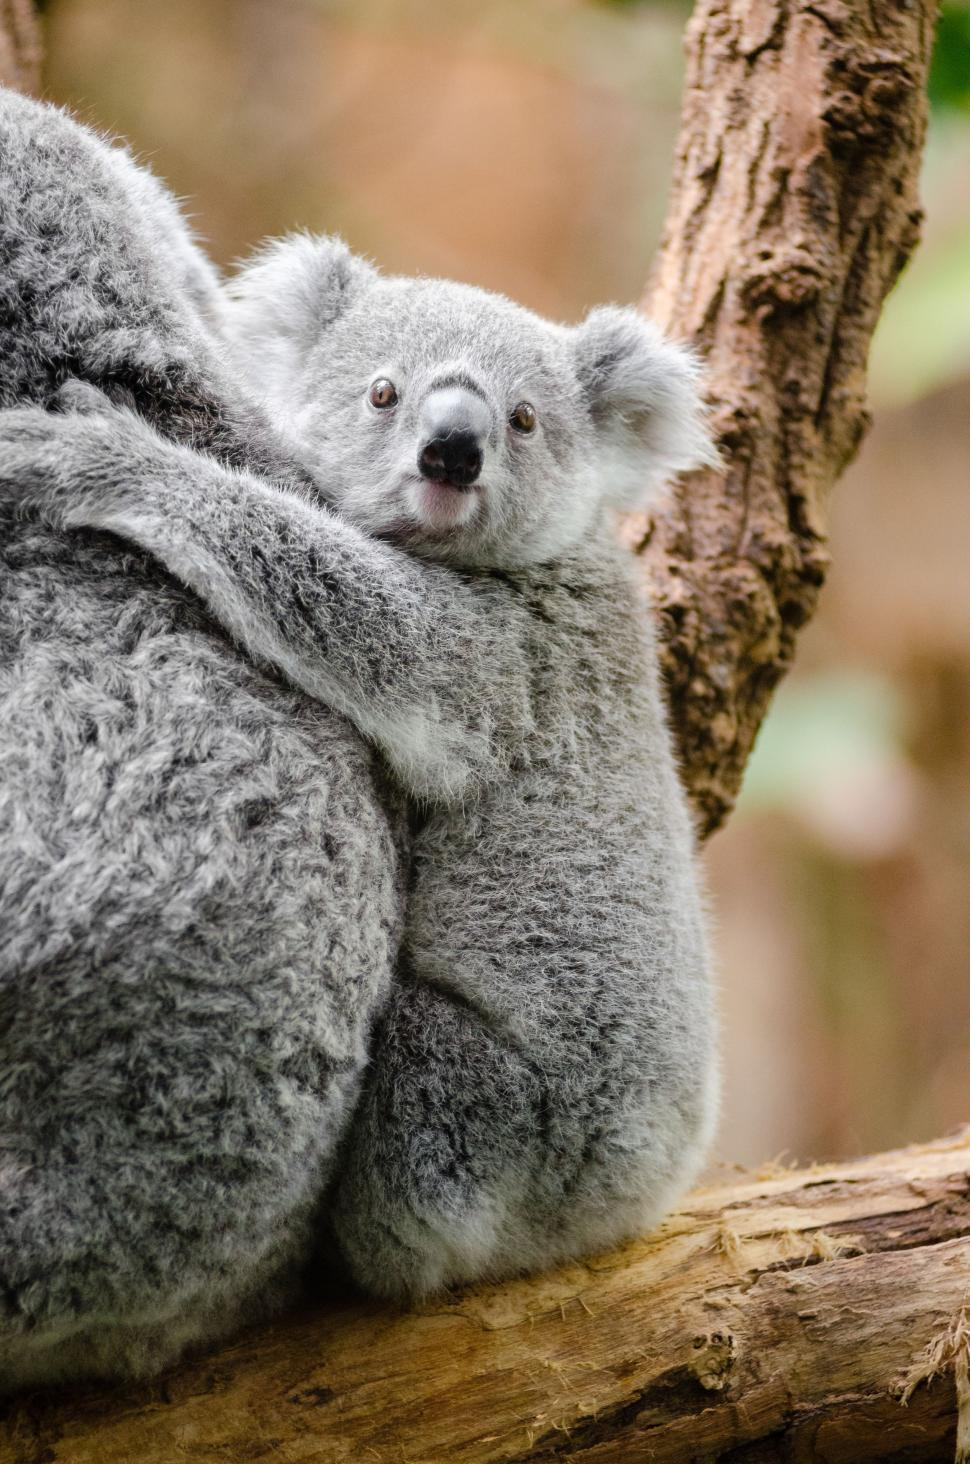 Download Free Stock Photo of Hugging Koala